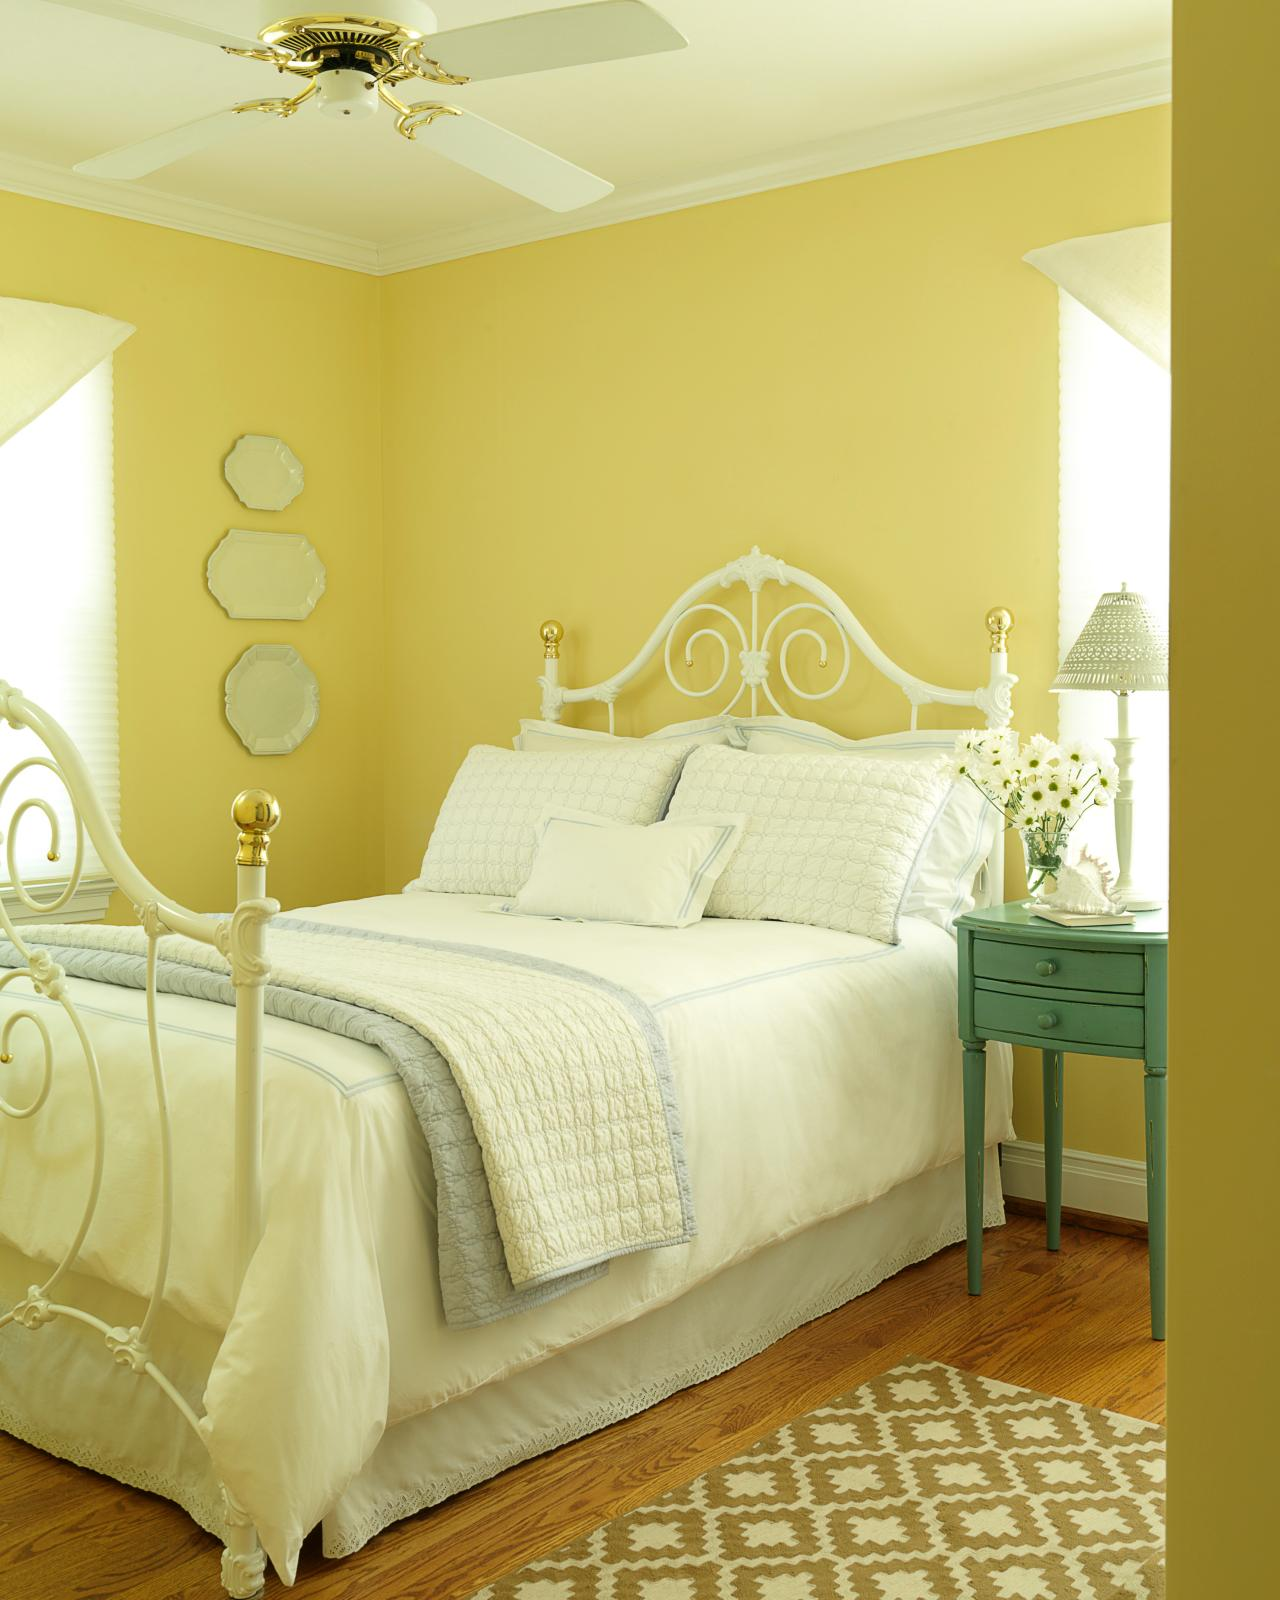 yellow bedroom ideas 30 beautiful yellow bedroom design ideas decoration love 2195